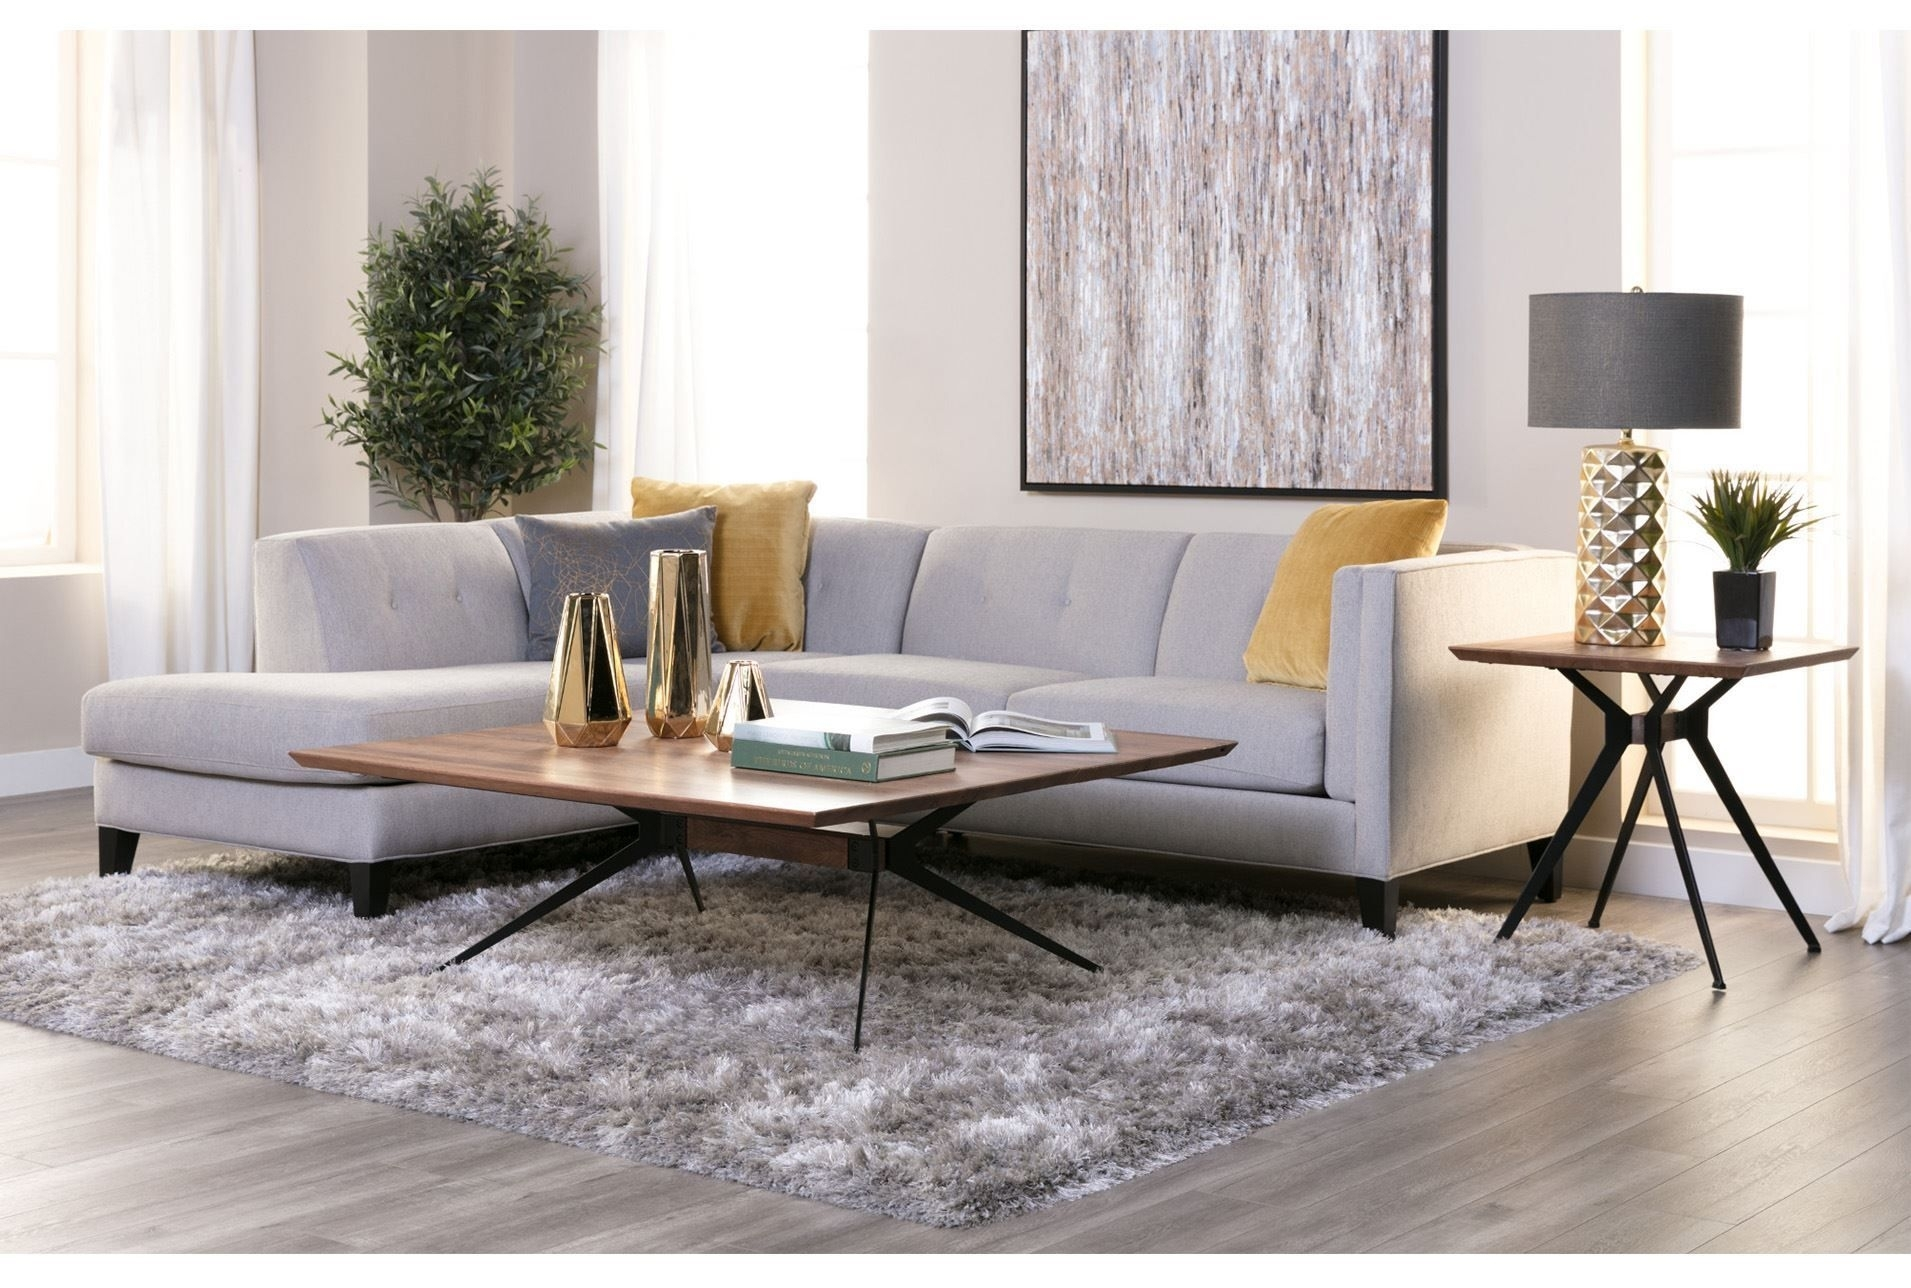 Avery 2 Piece Sectional W/laf Armless Chaise | Home Decor/interior Regarding Avery 2 Piece Sectionals With Laf Armless Chaise (Image 5 of 25)